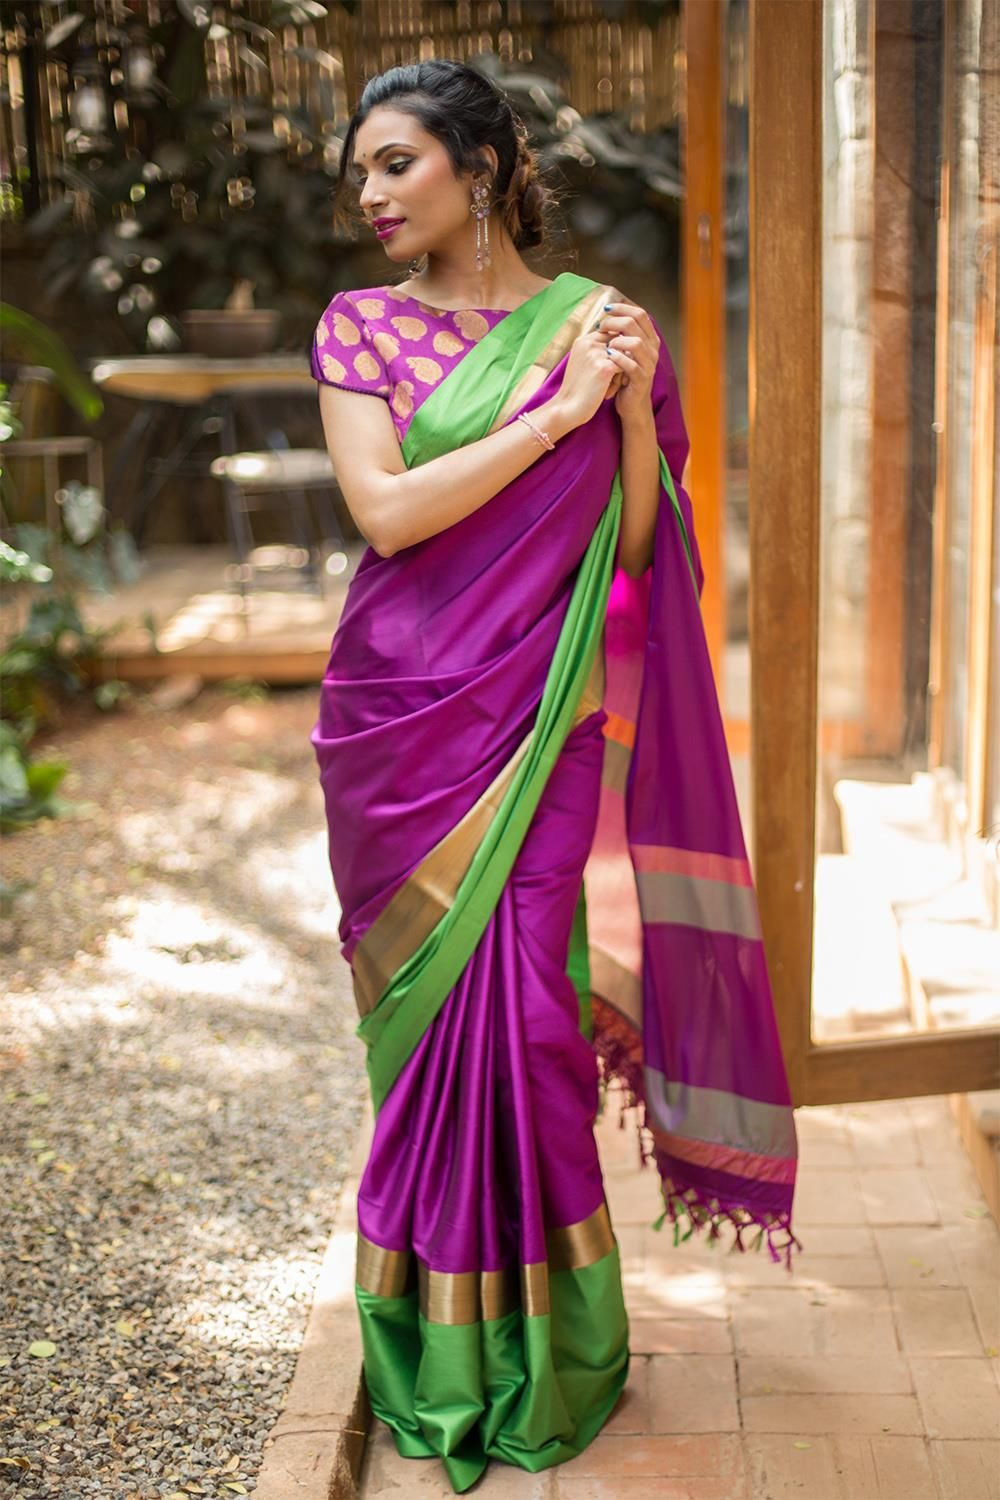 3ba6f23fcc Purple soft cotton silk saree with green and dull gold border #saree #blouse  #houseofblouse #indian #bollywood #style #ethnic #purple #green #gold #soft  # ...